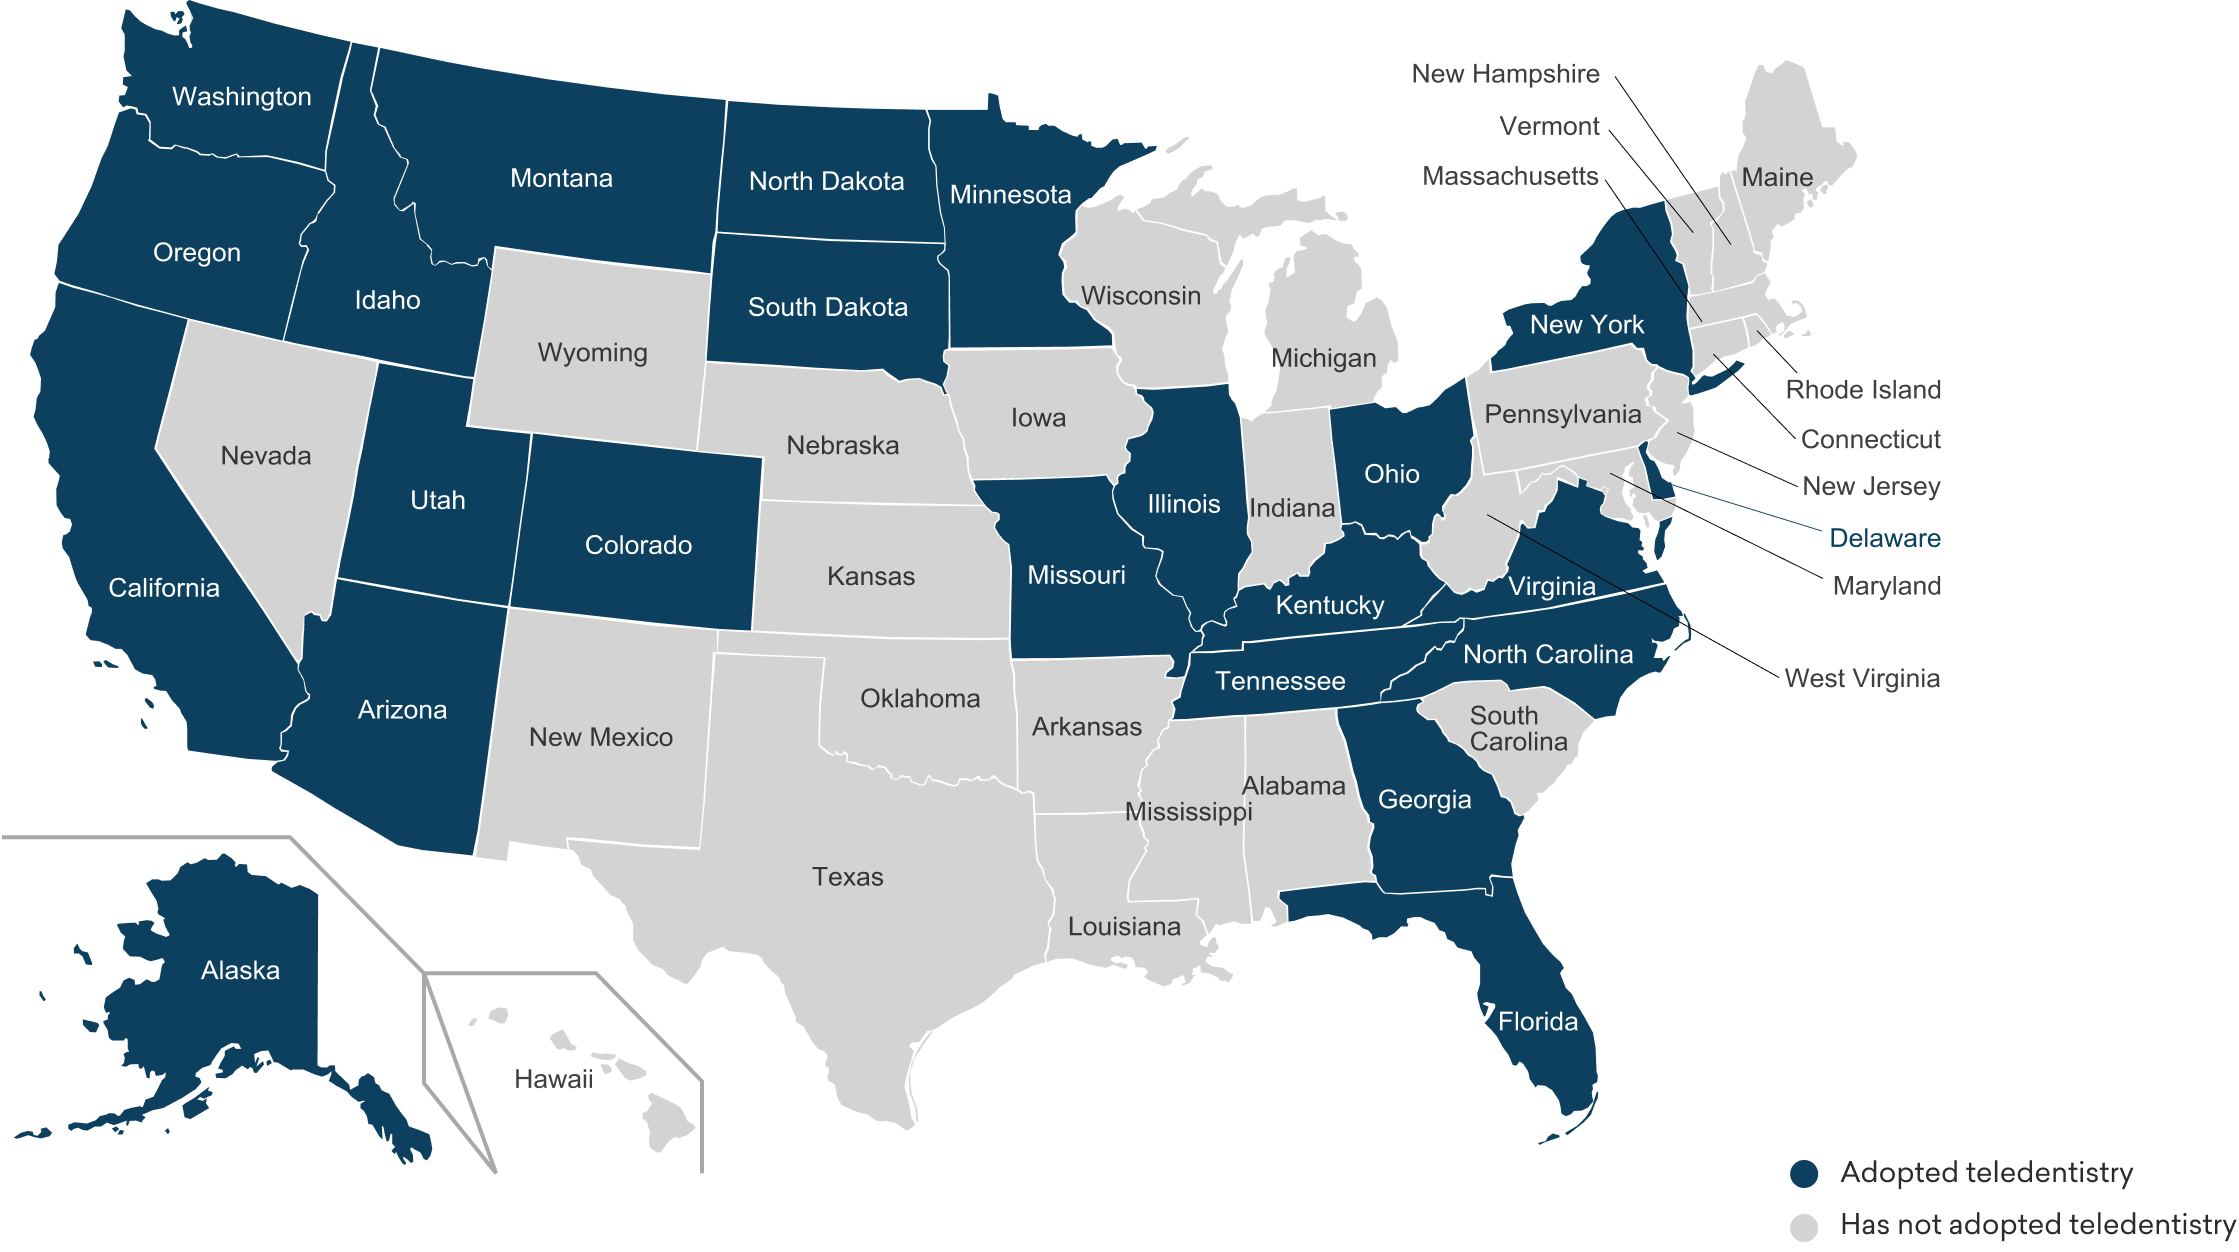 map of states offering teledentistry services